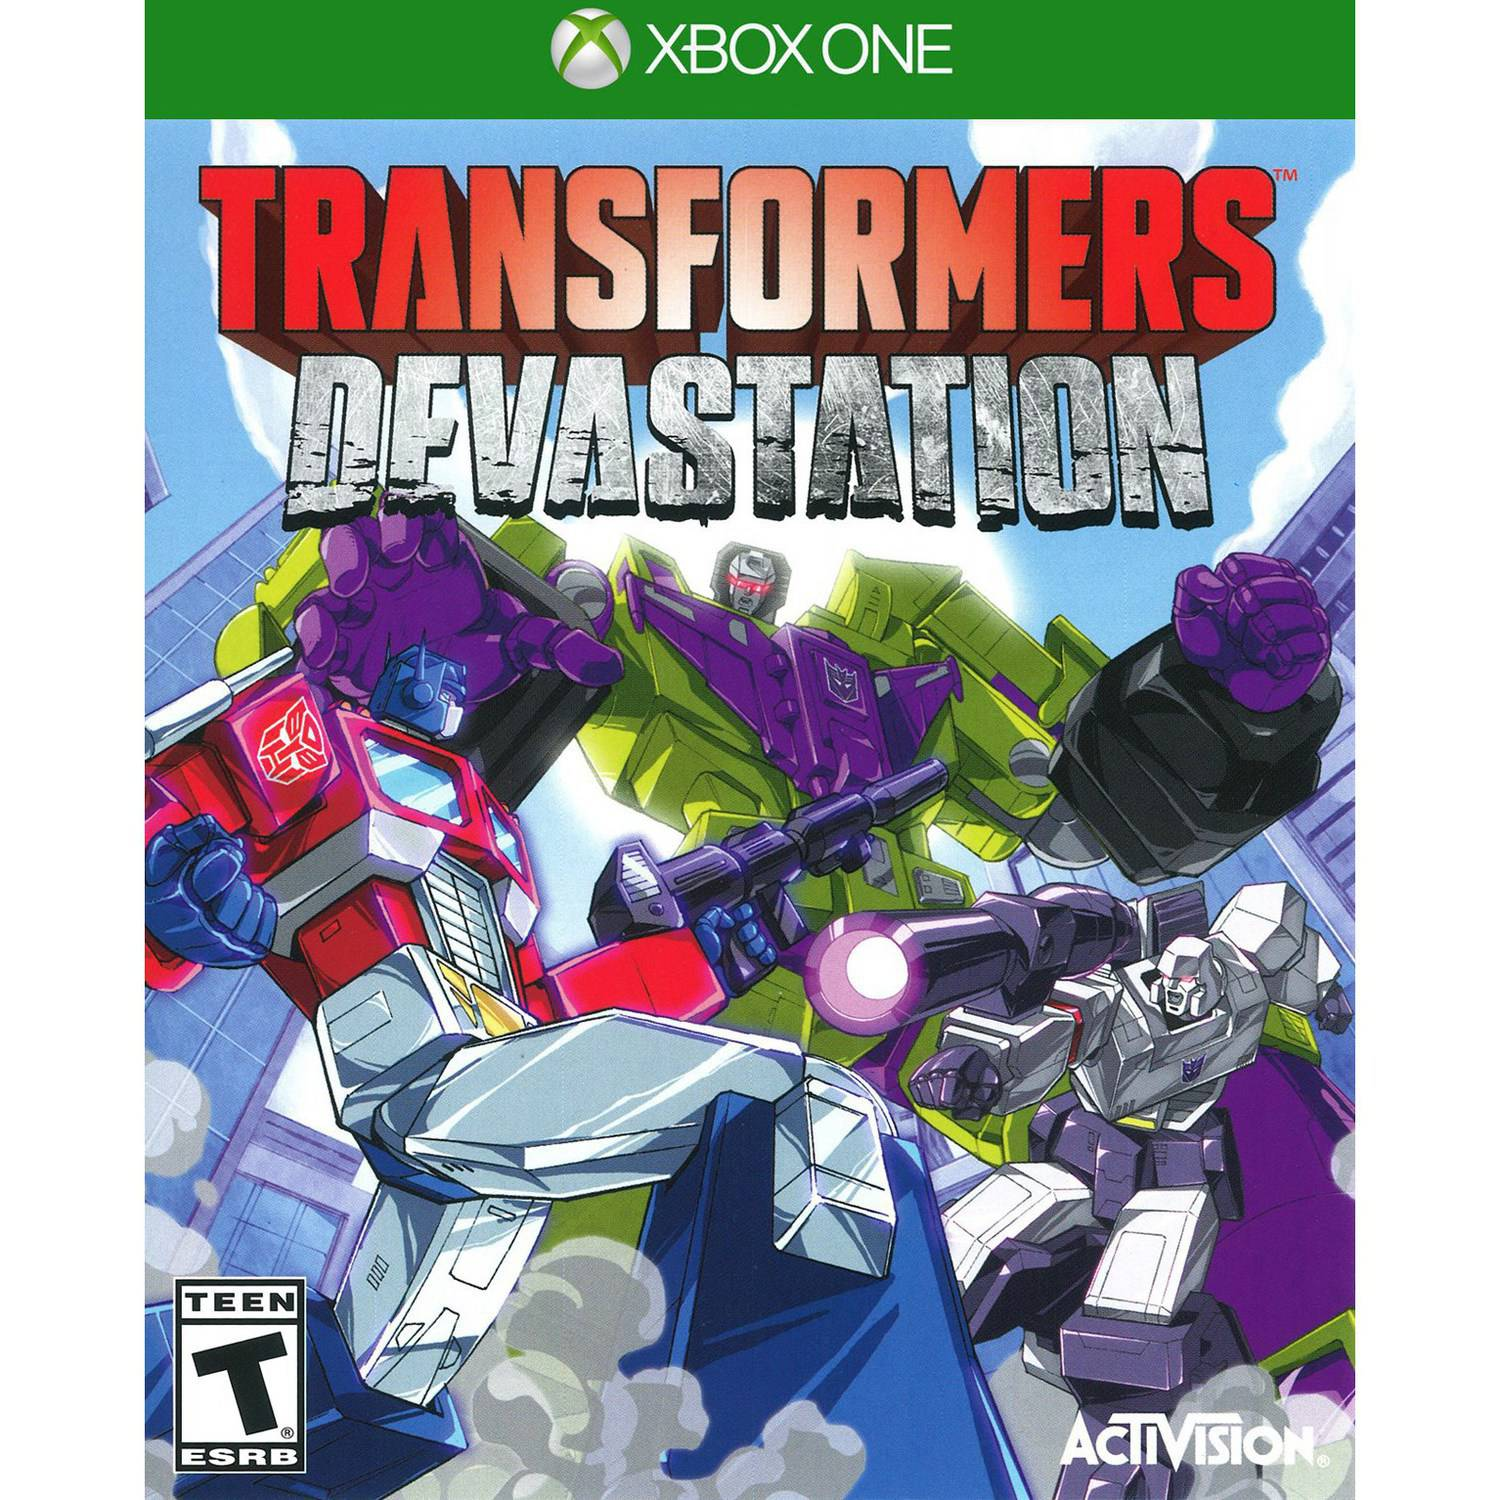 Transformers Devastation, Activision, Xbox One, 047875771208 by Activision